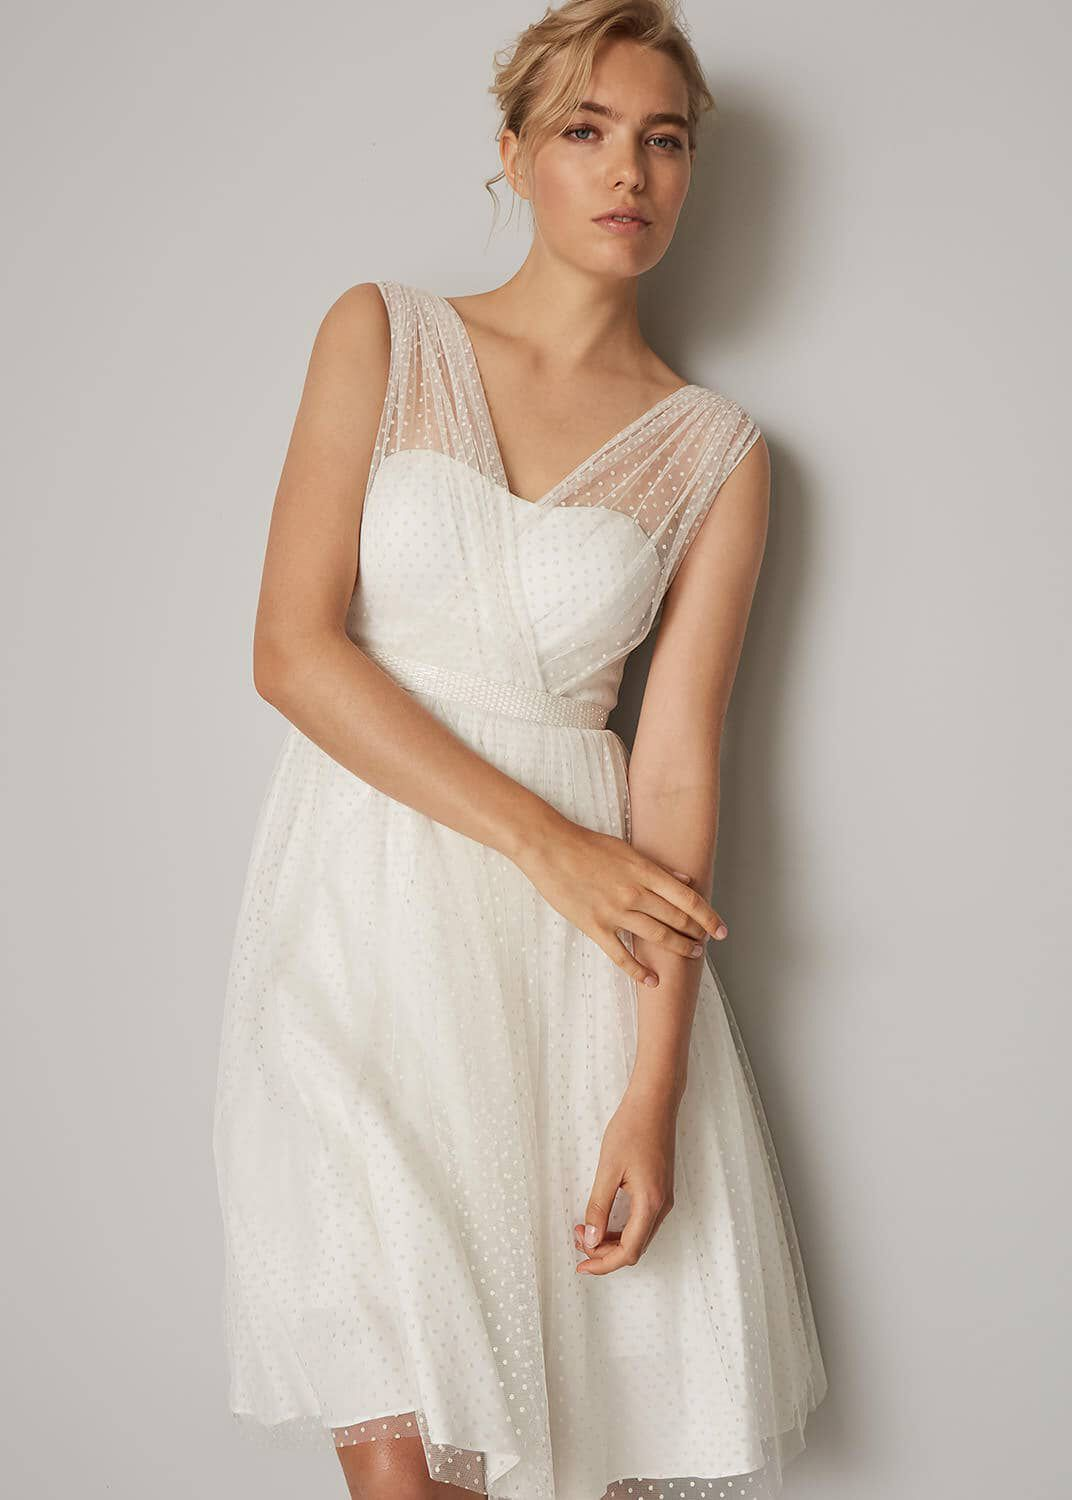 1960s Style Dresses, Clothing, Shoes UK Phase Eight Mae Wedding Dress Neutral Wedding £175.00 AT vintagedancer.com